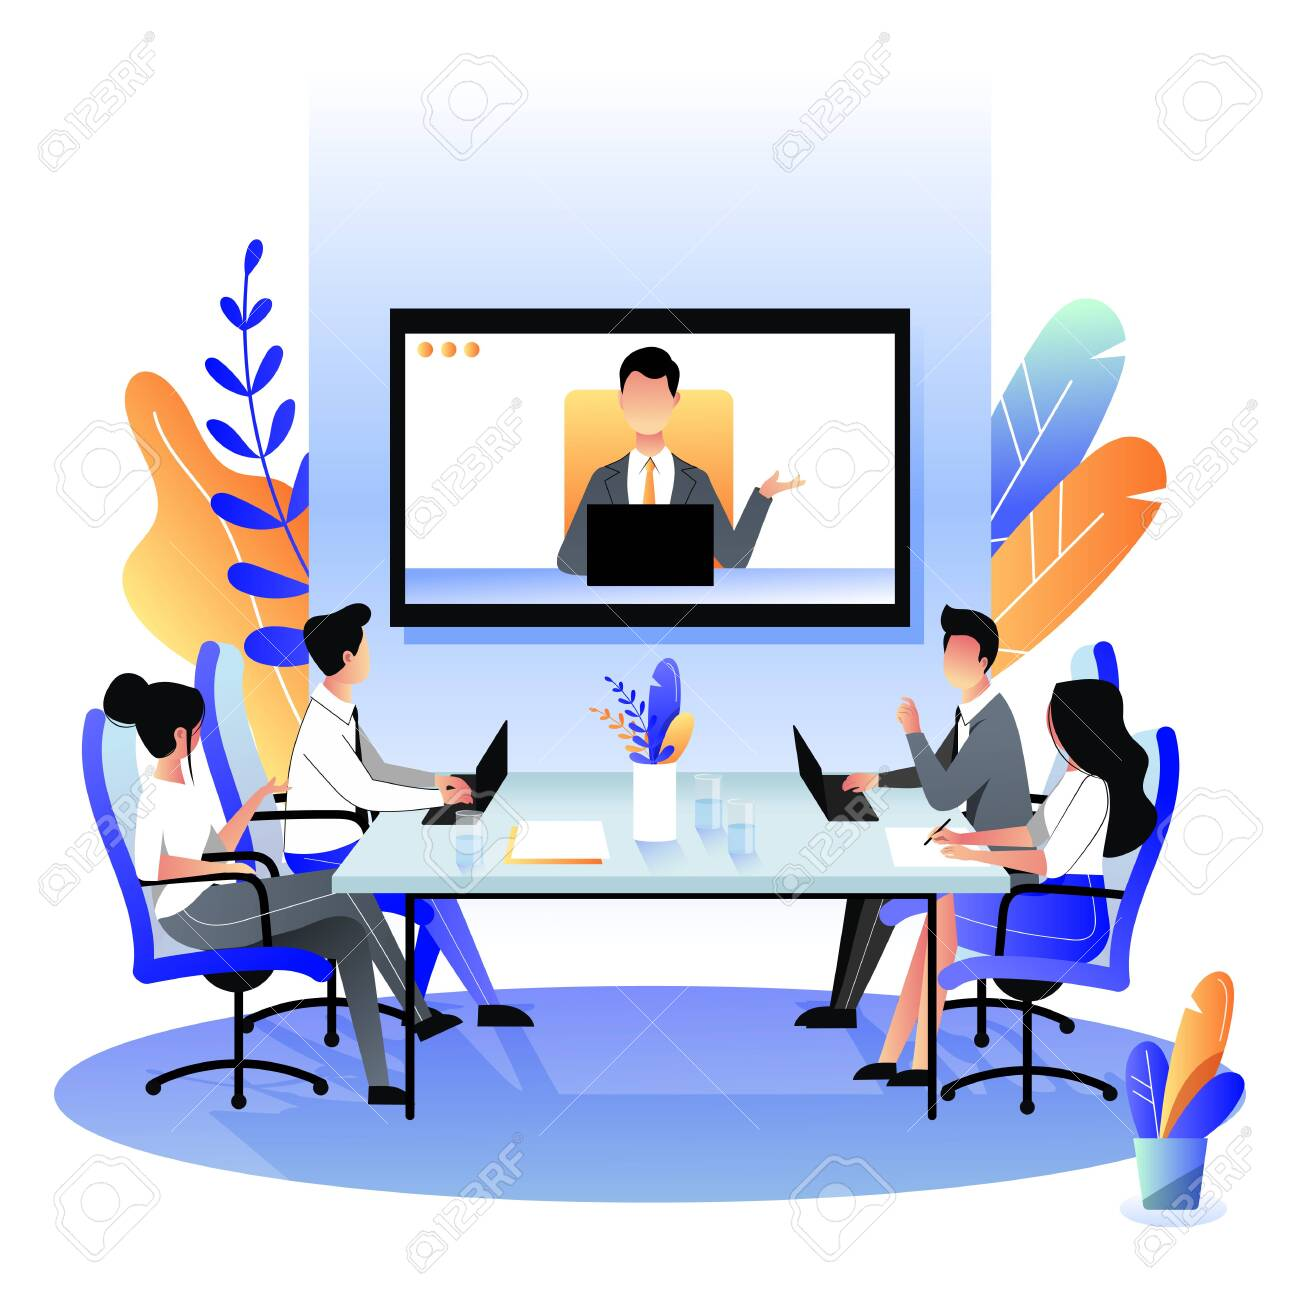 Group of businesspeople at the video conference call in boardroom. Vector flat cartoon illustration. Online meeting with CEO, manager or director. Business consulting concept. - 131429903